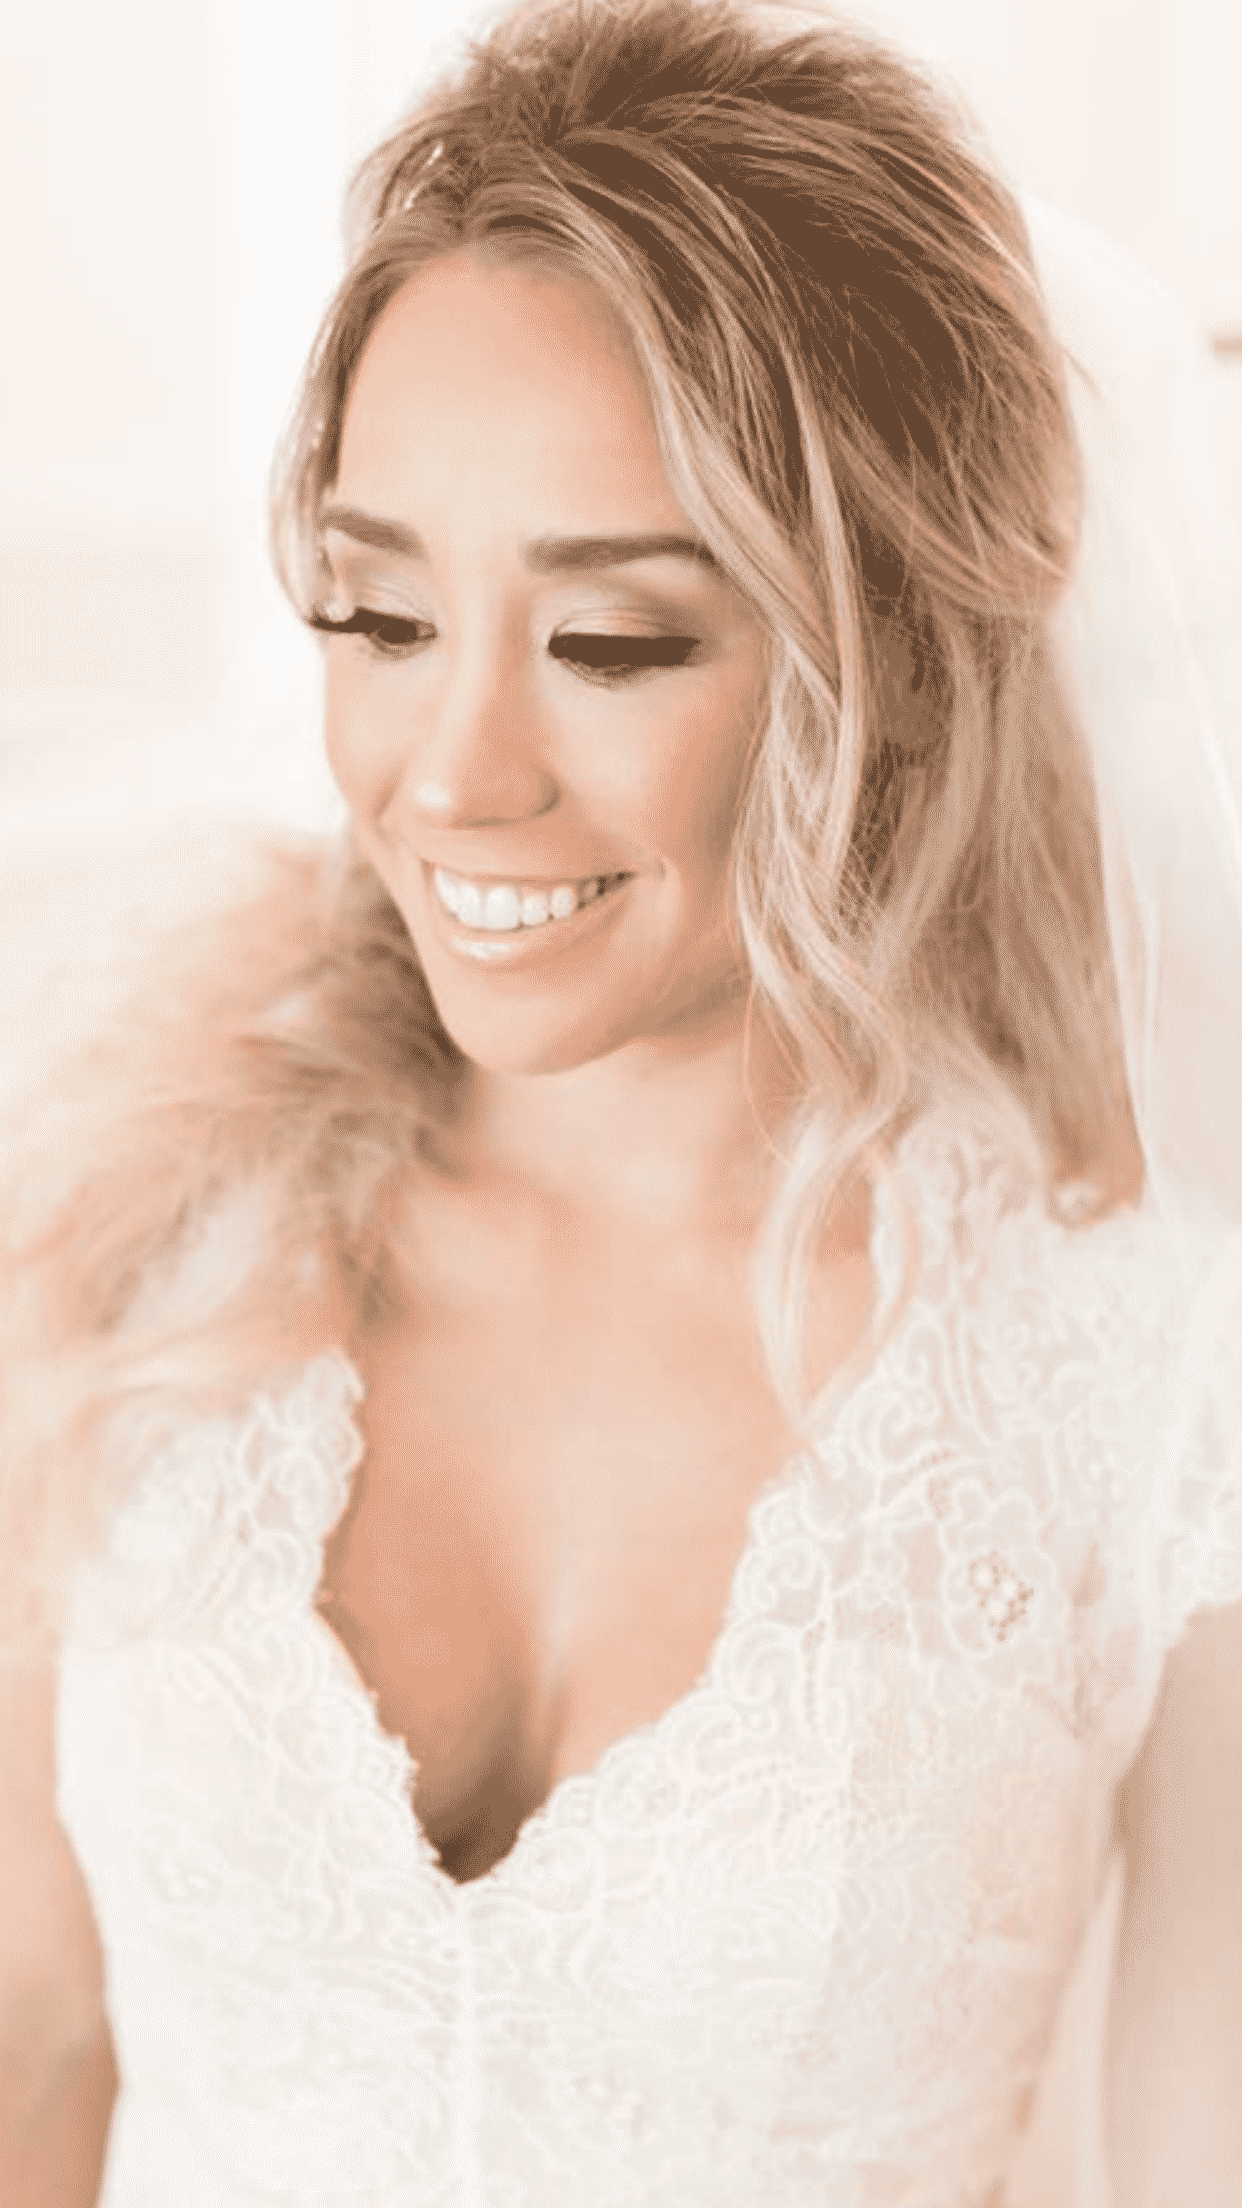 Mineral Makeup for your wedding day?